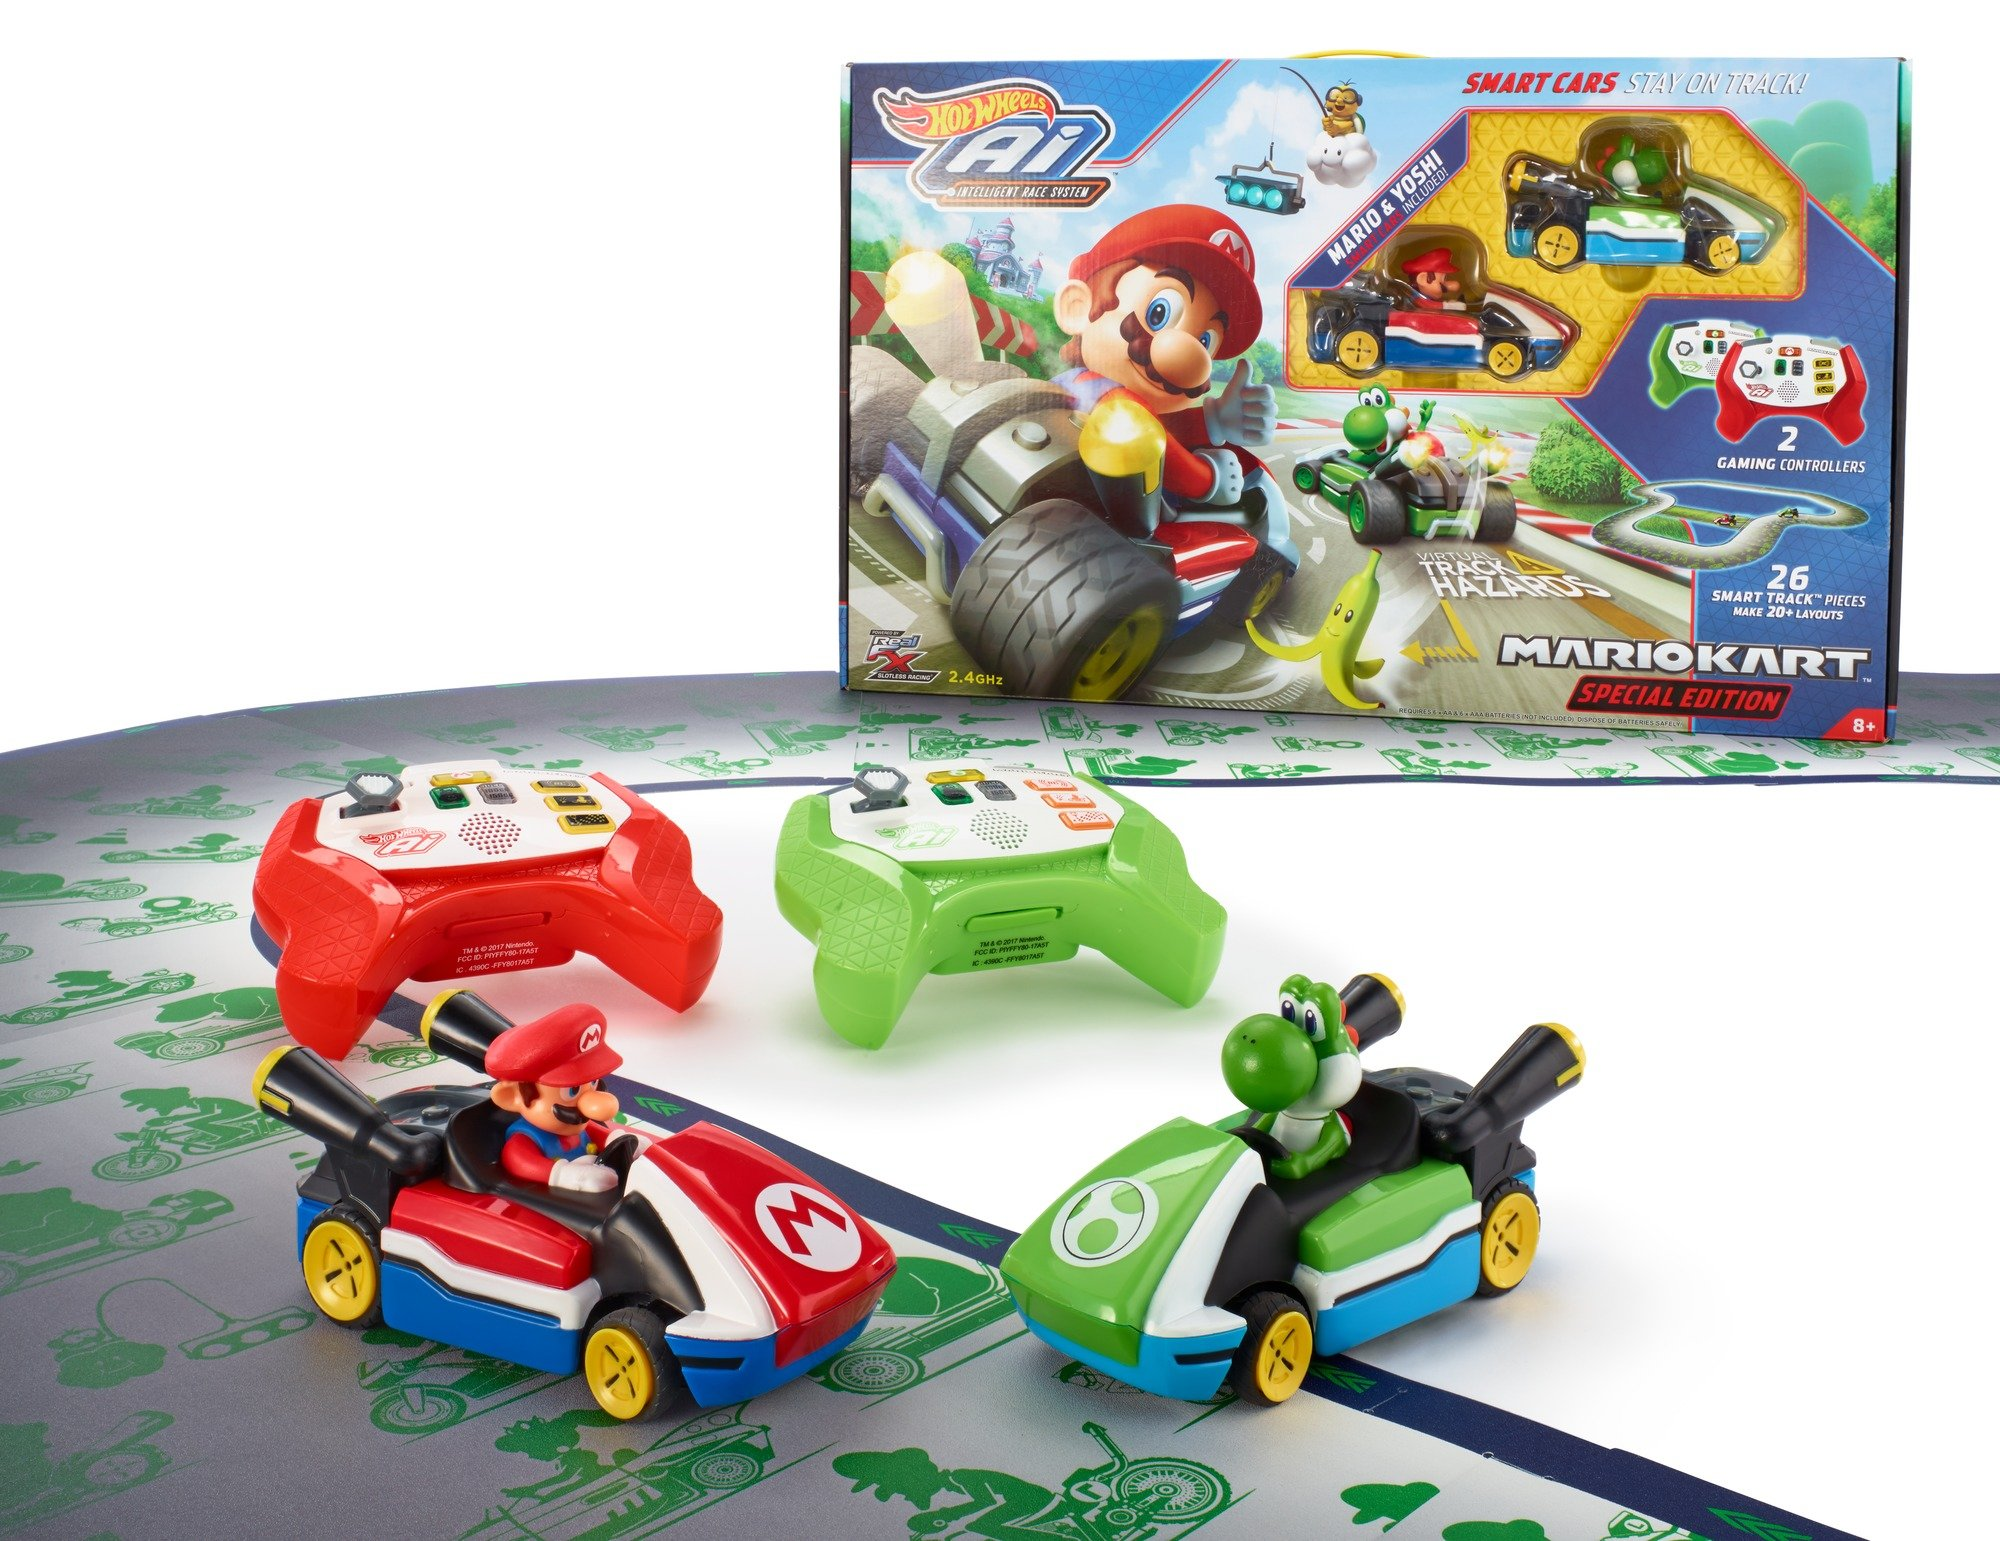 Hot Wheels Ai Starter Set Mario Kart Edition Track Set by Hot Wheels